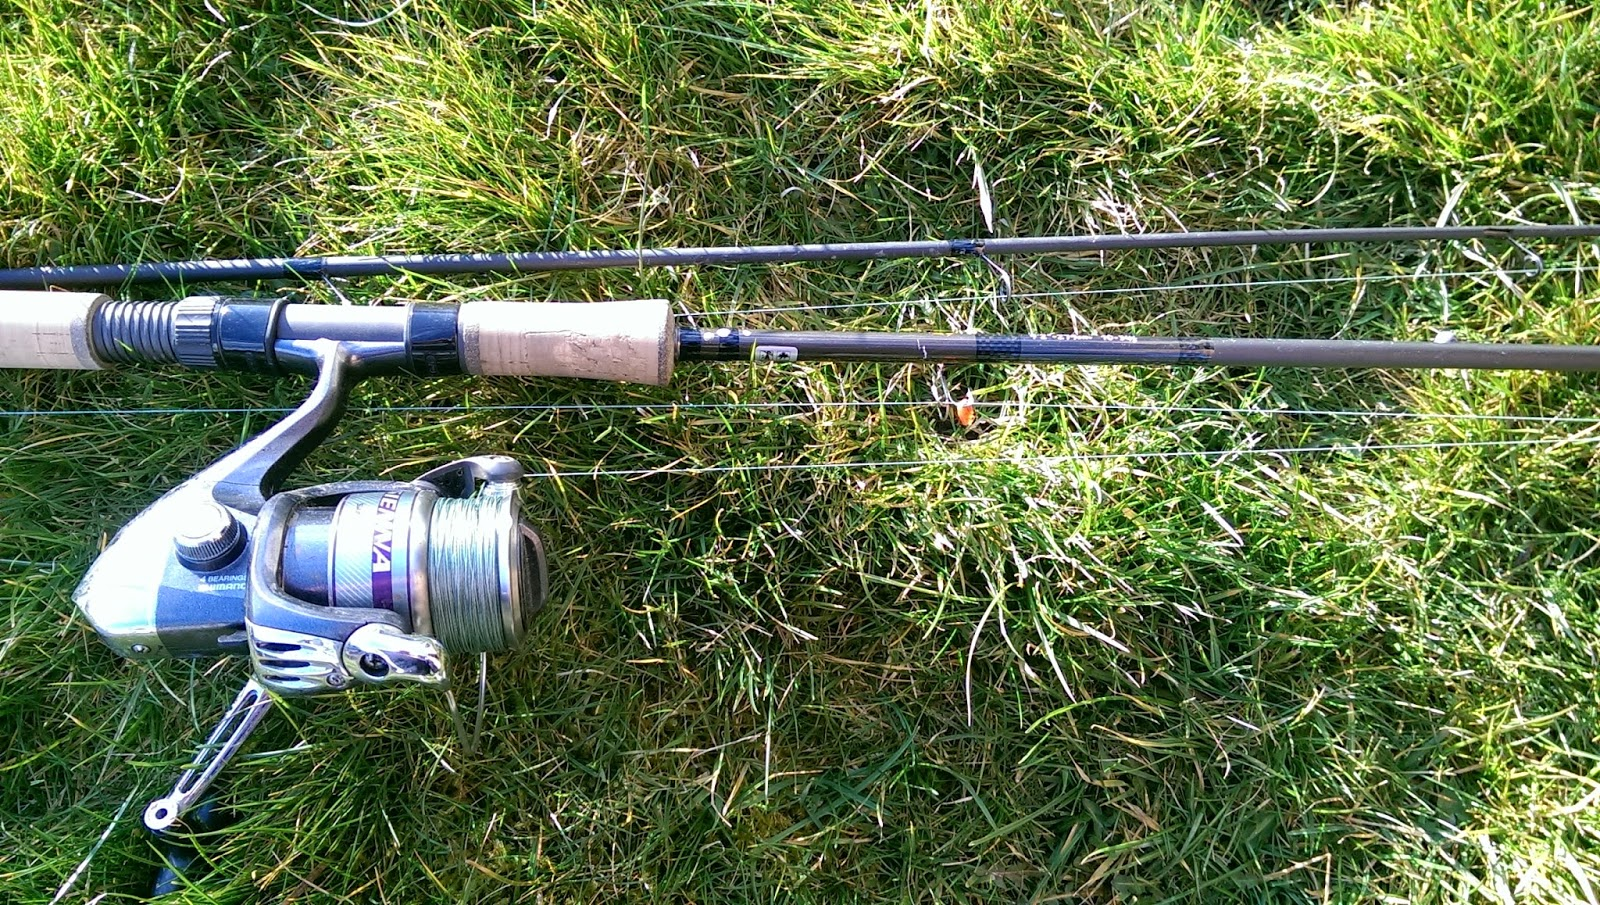 Paul goes fishing product review savagegear 9 for Fishing rod reviews